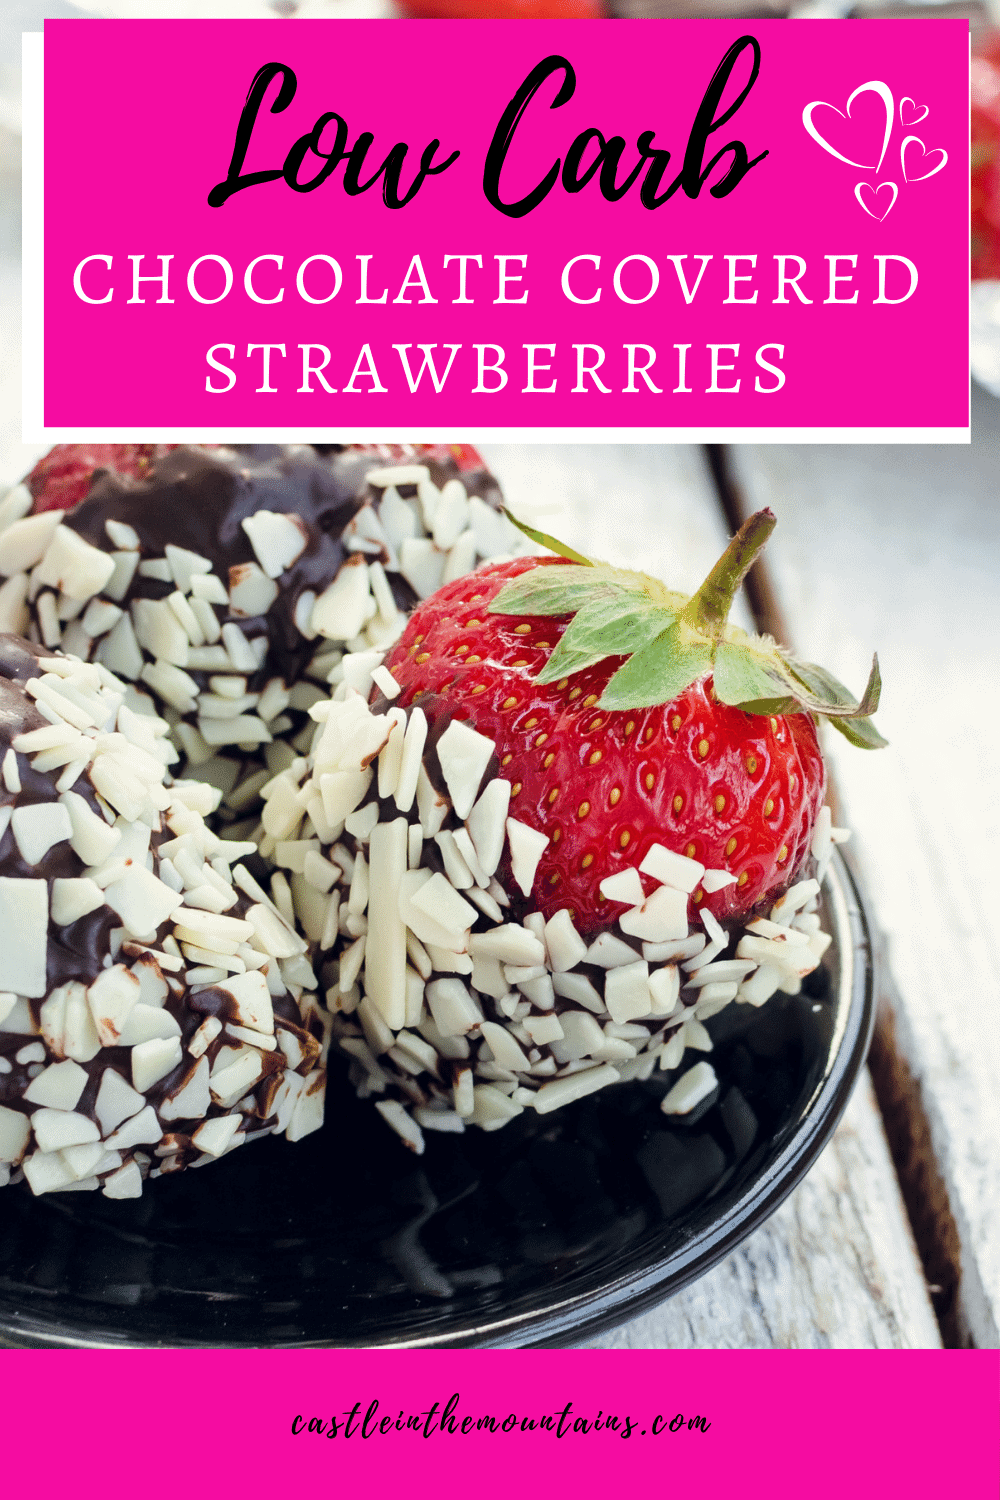 Chocolate Covered Strawberries - Make this romantic dessert in minutes!